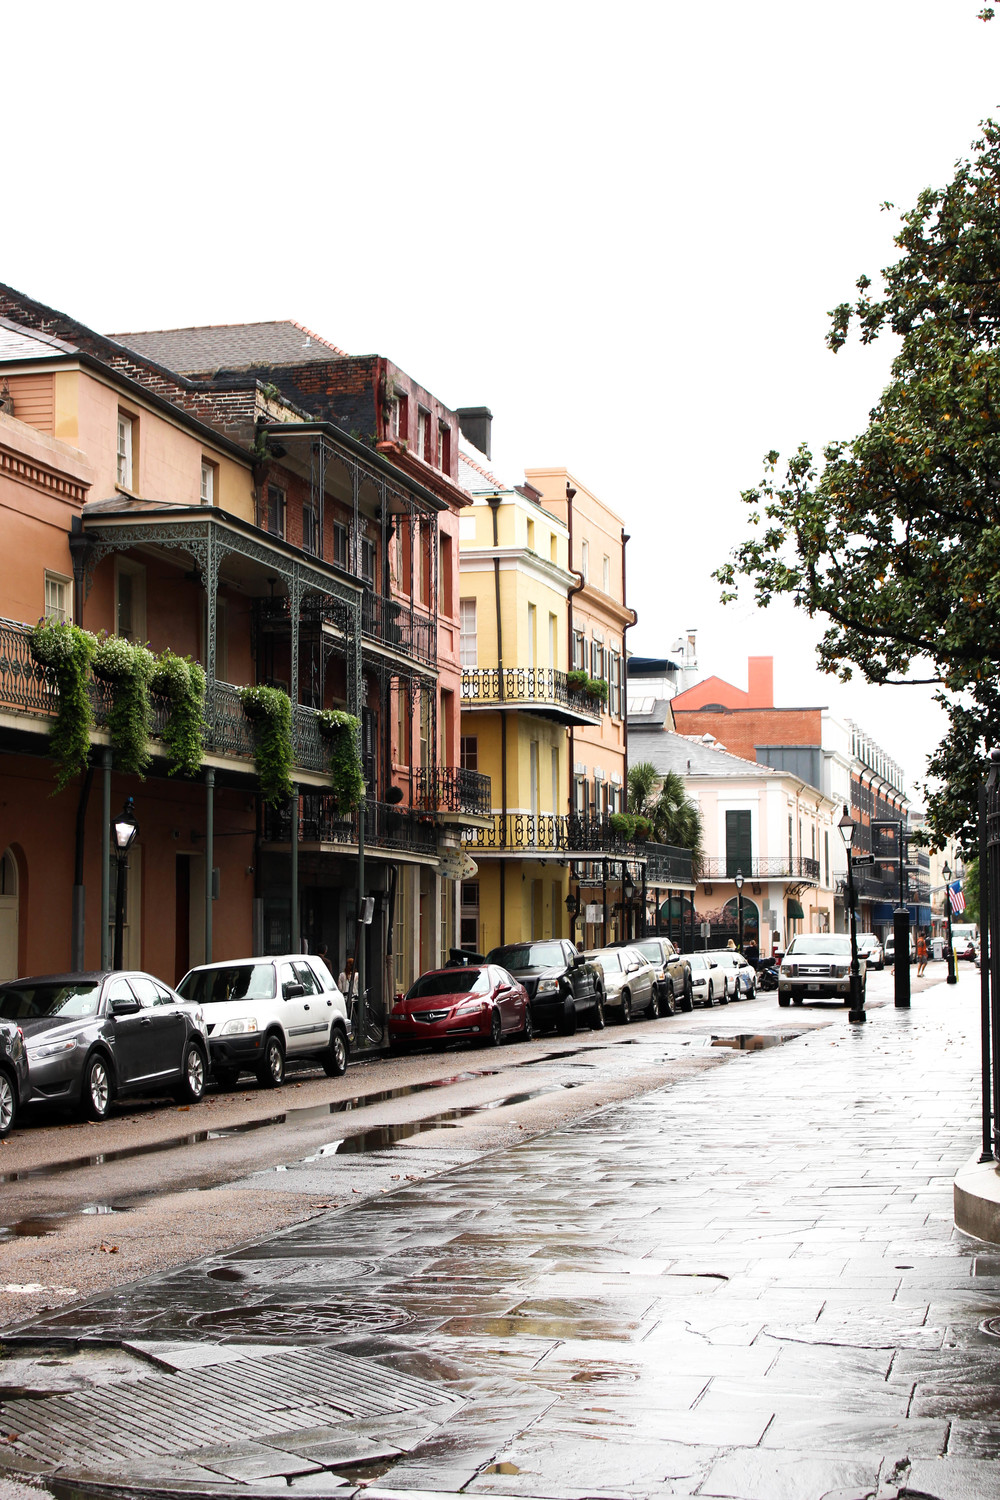 New Orleans Travel Guide | The Gallivant Blog